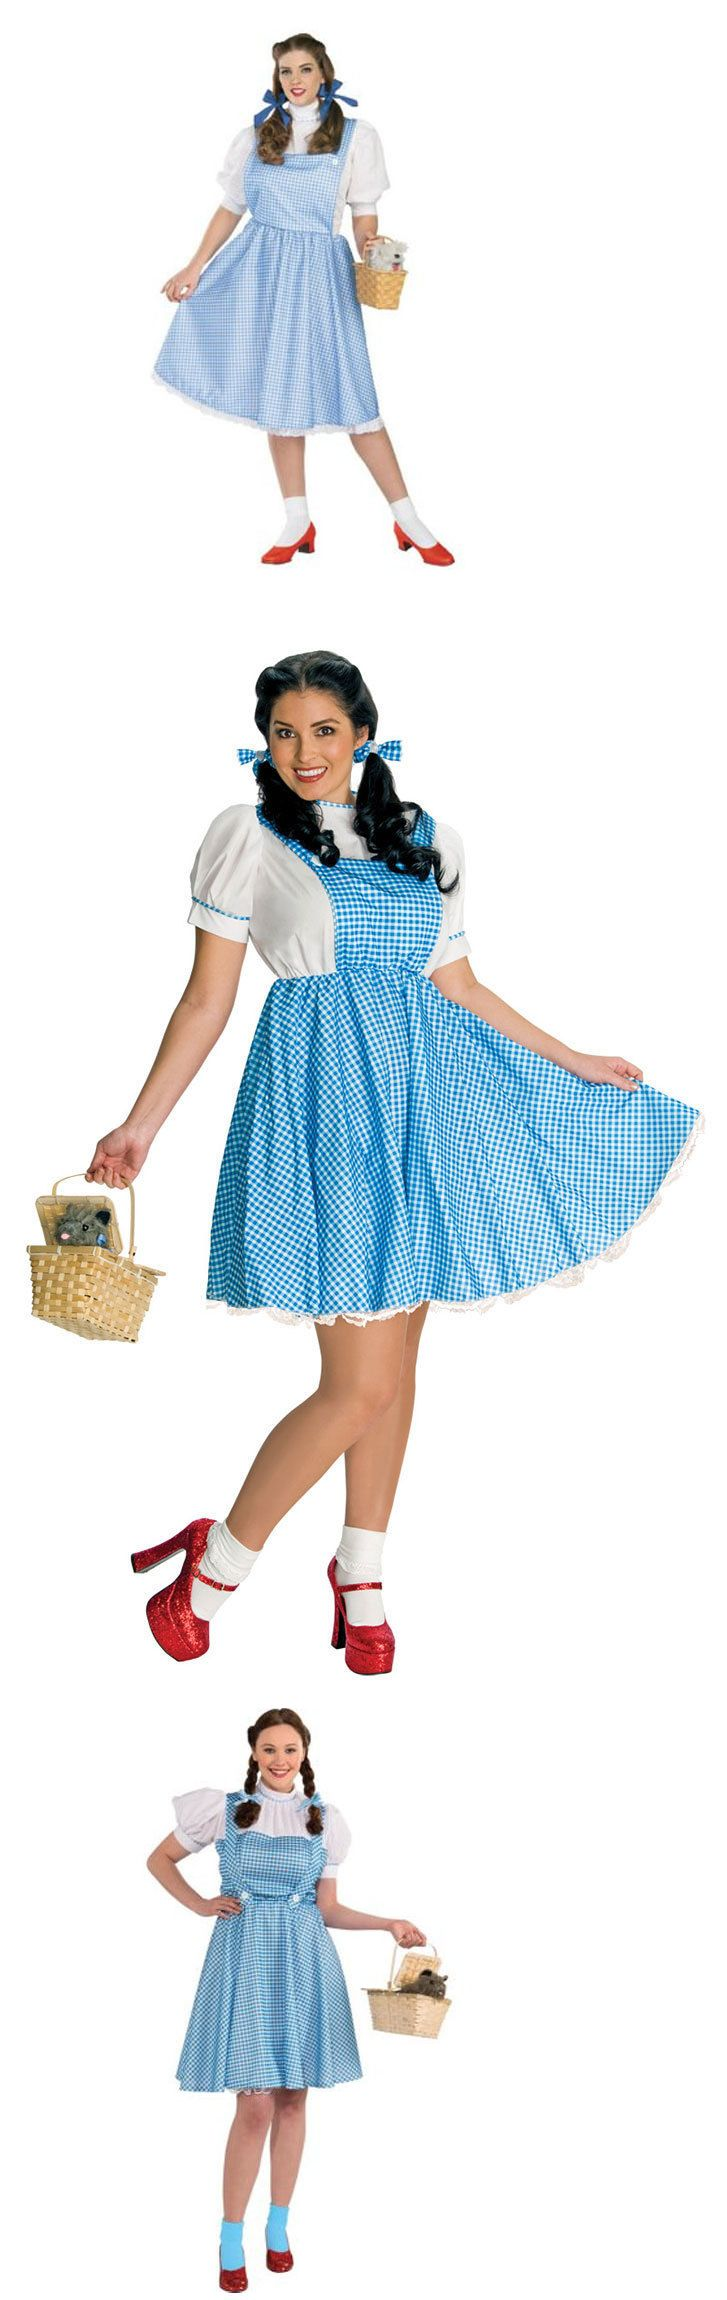 Best 25+ Dorothy wizard of oz ideas on Pinterest | Dorothy oz ...